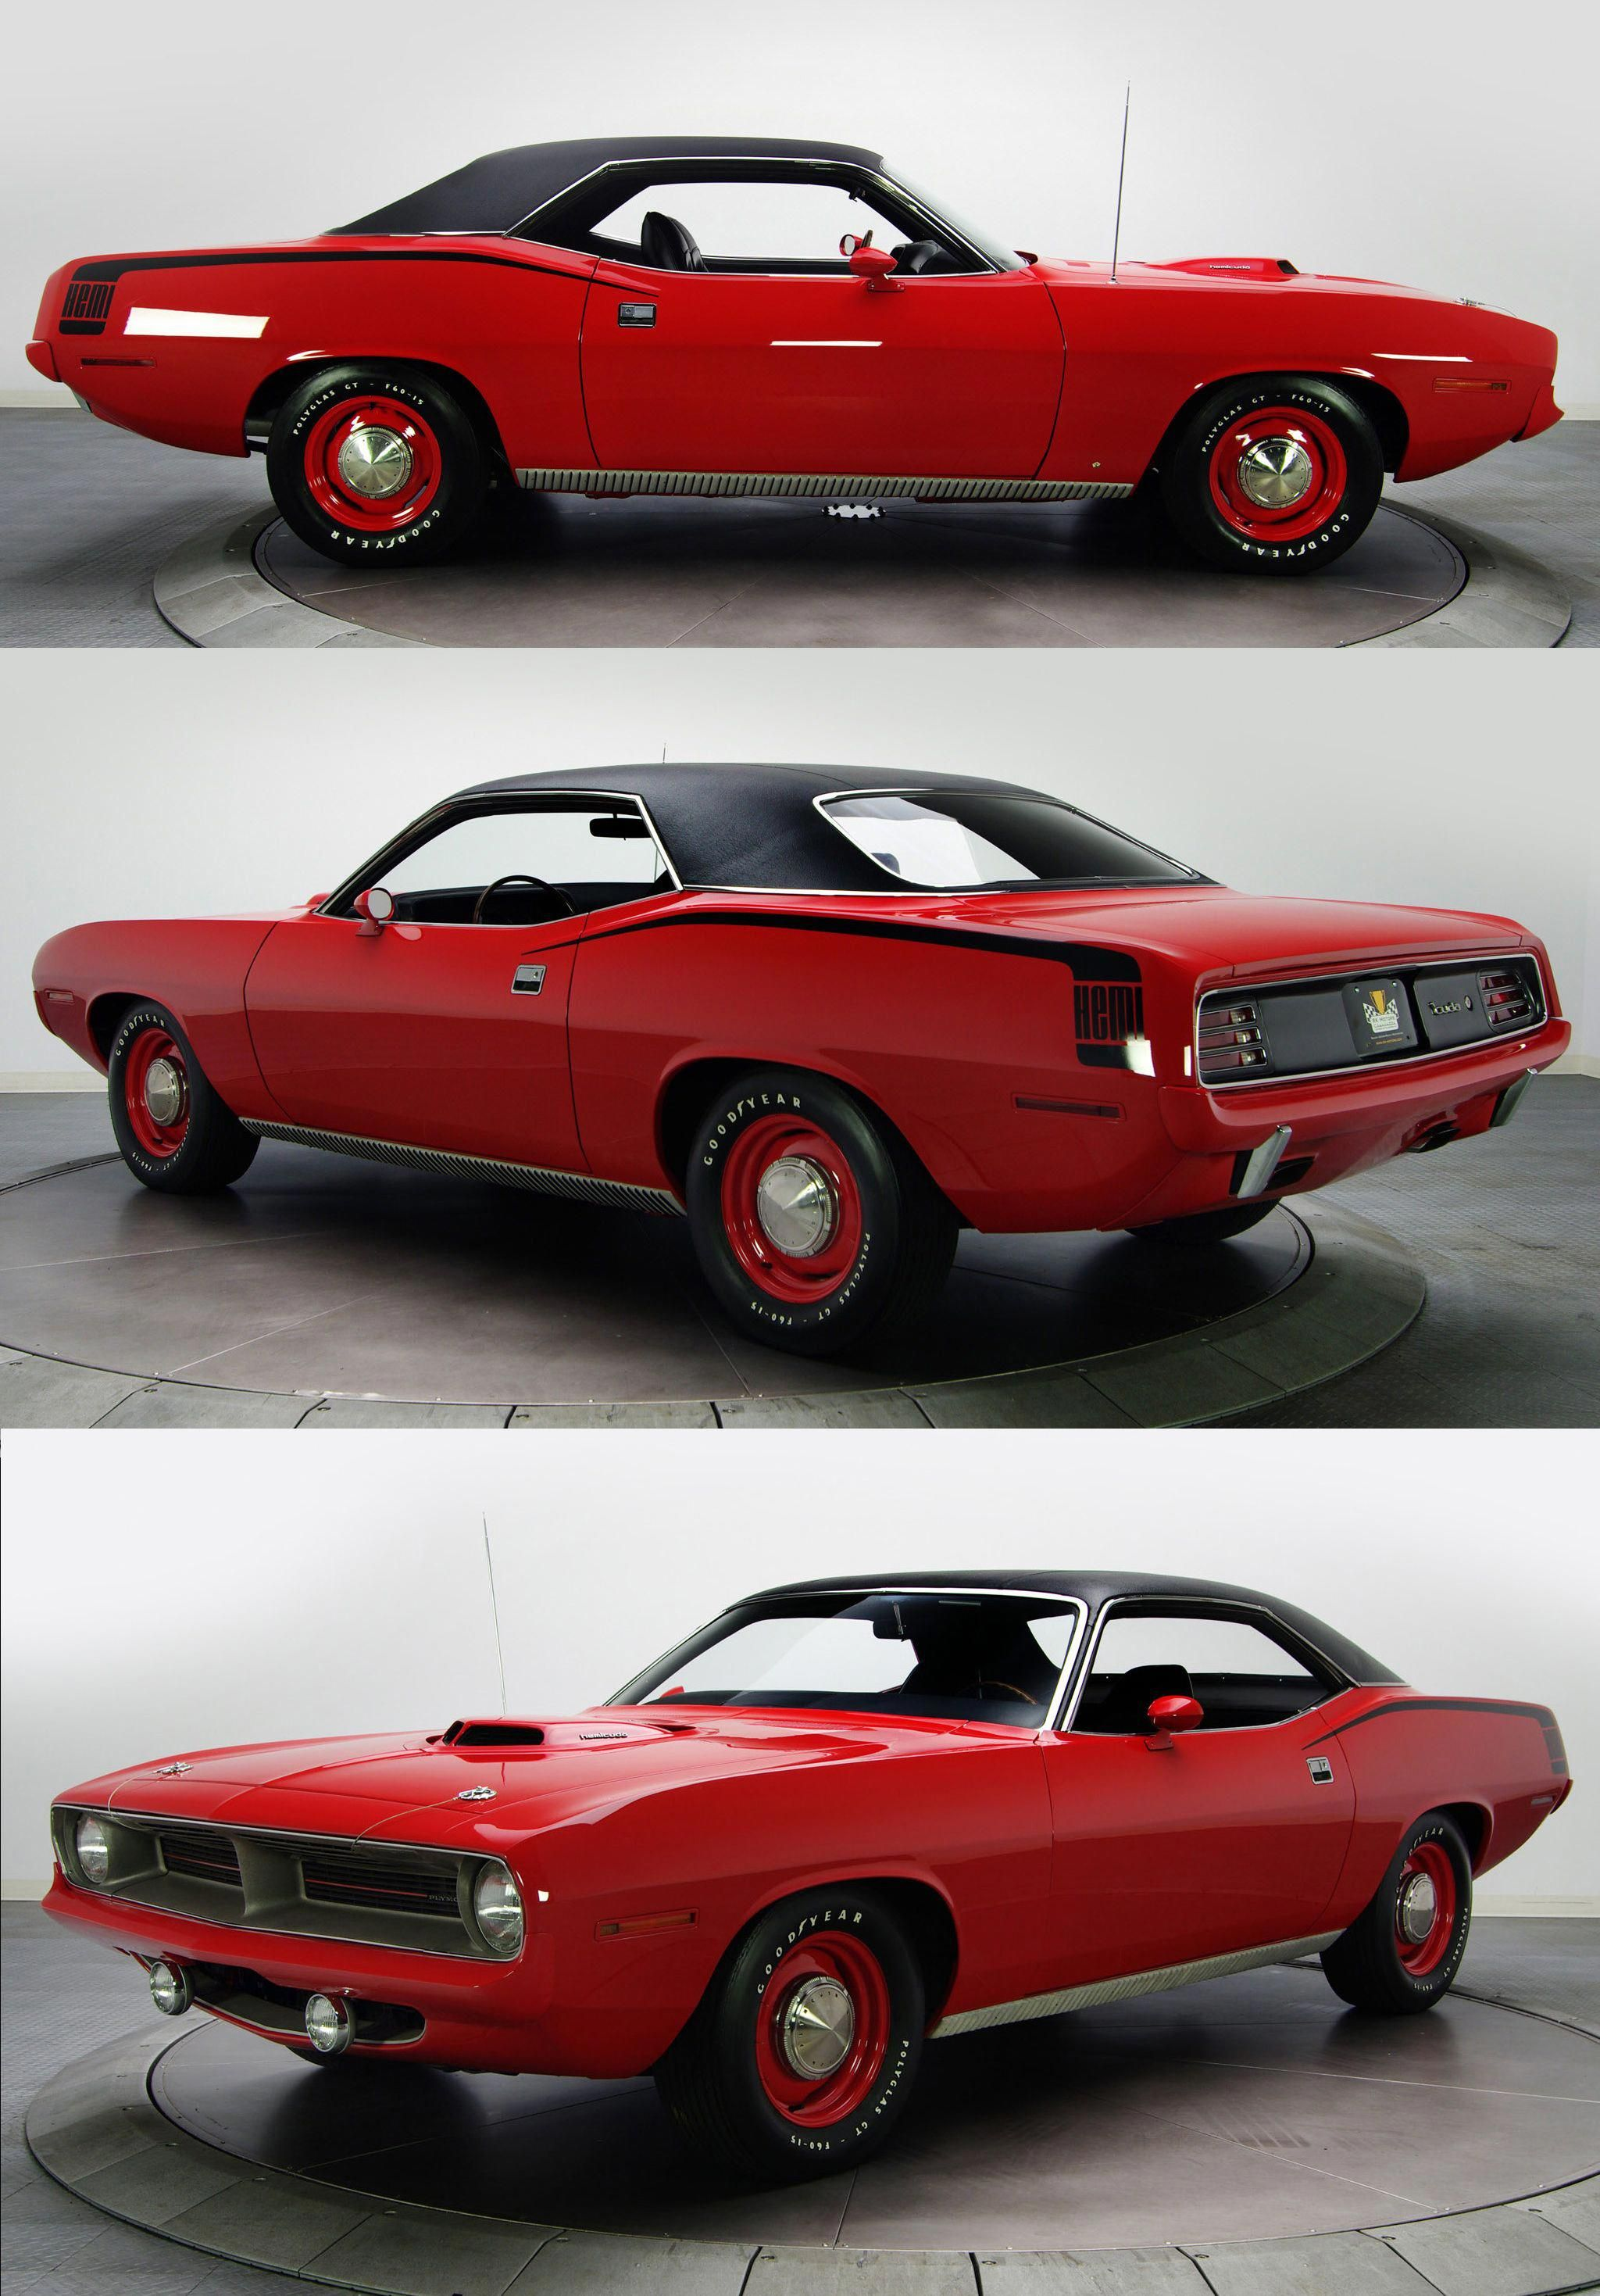 1970 Plymouth Hemi Cuda In Rallye Red Bone Stock I Love The Shaker Hood Hockey Stick Stripe Elastomeric Classic Cars Muscle Cars Mopar Muscle Cars